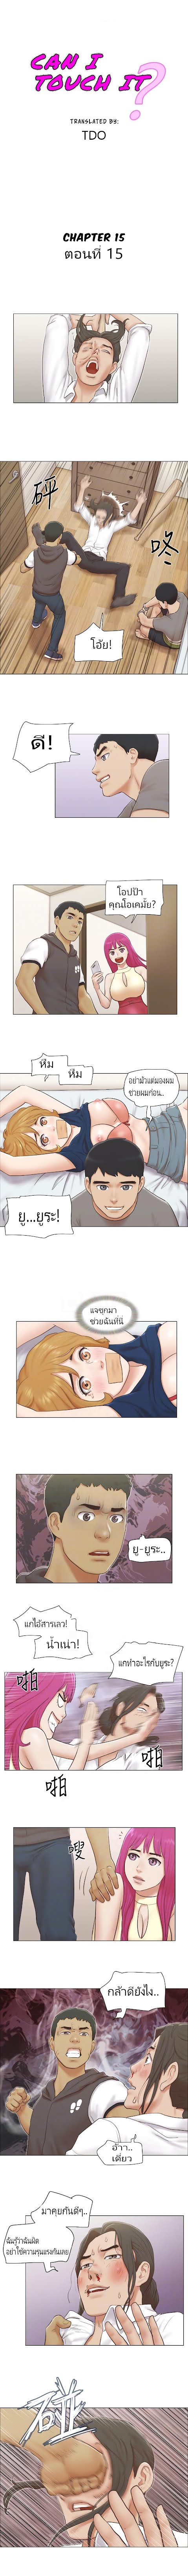 Can I Touch It?-ตอนที่ 15